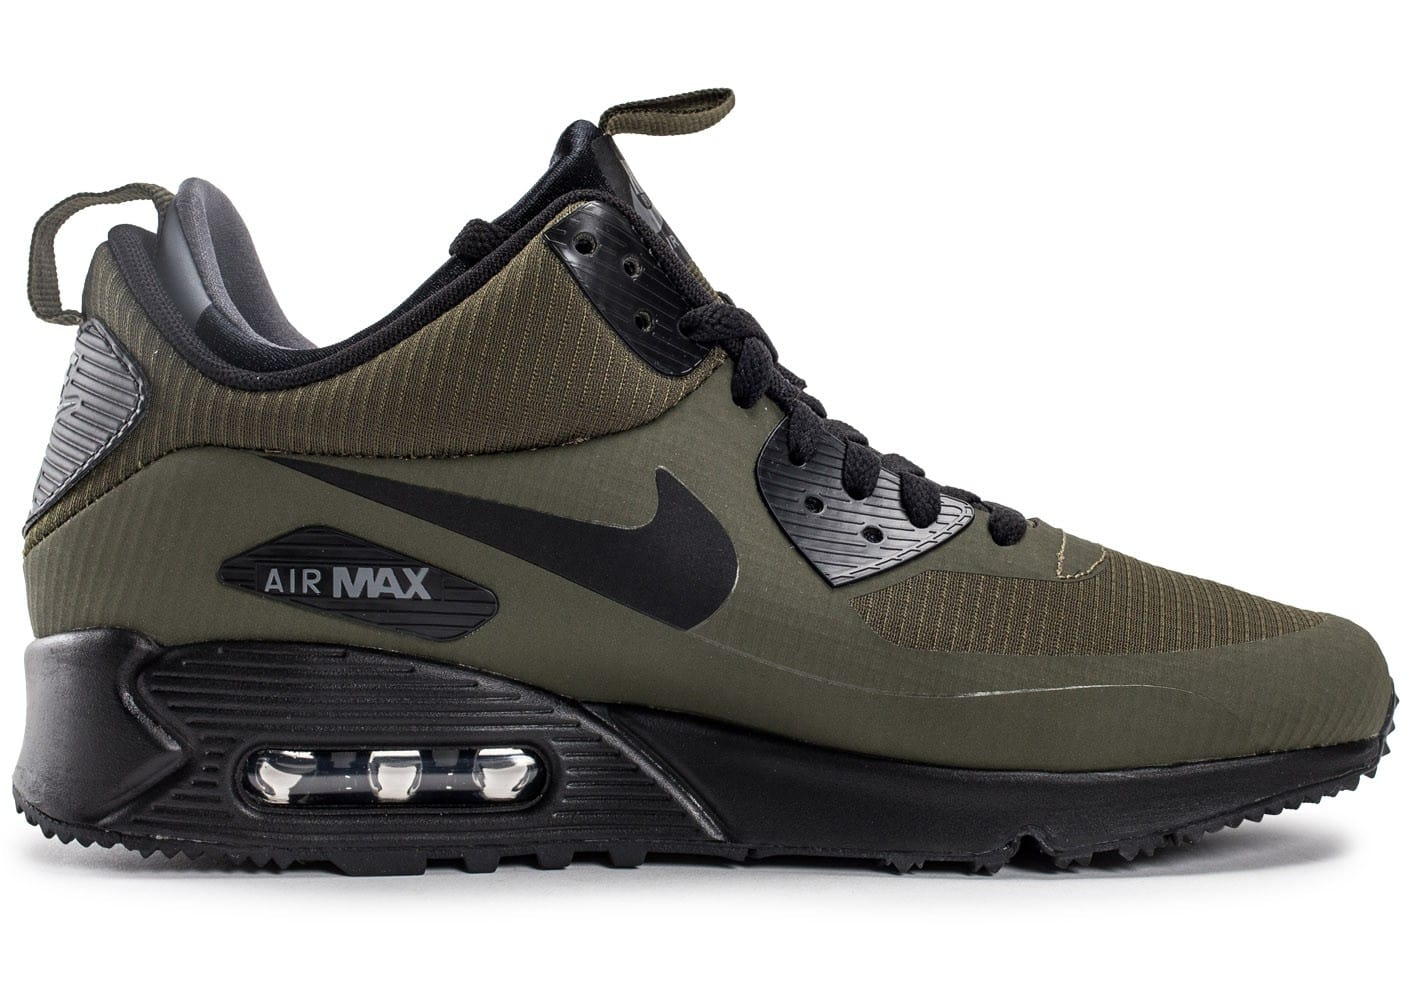 nike air max 90 mid winter green chaussures homme chausport. Black Bedroom Furniture Sets. Home Design Ideas